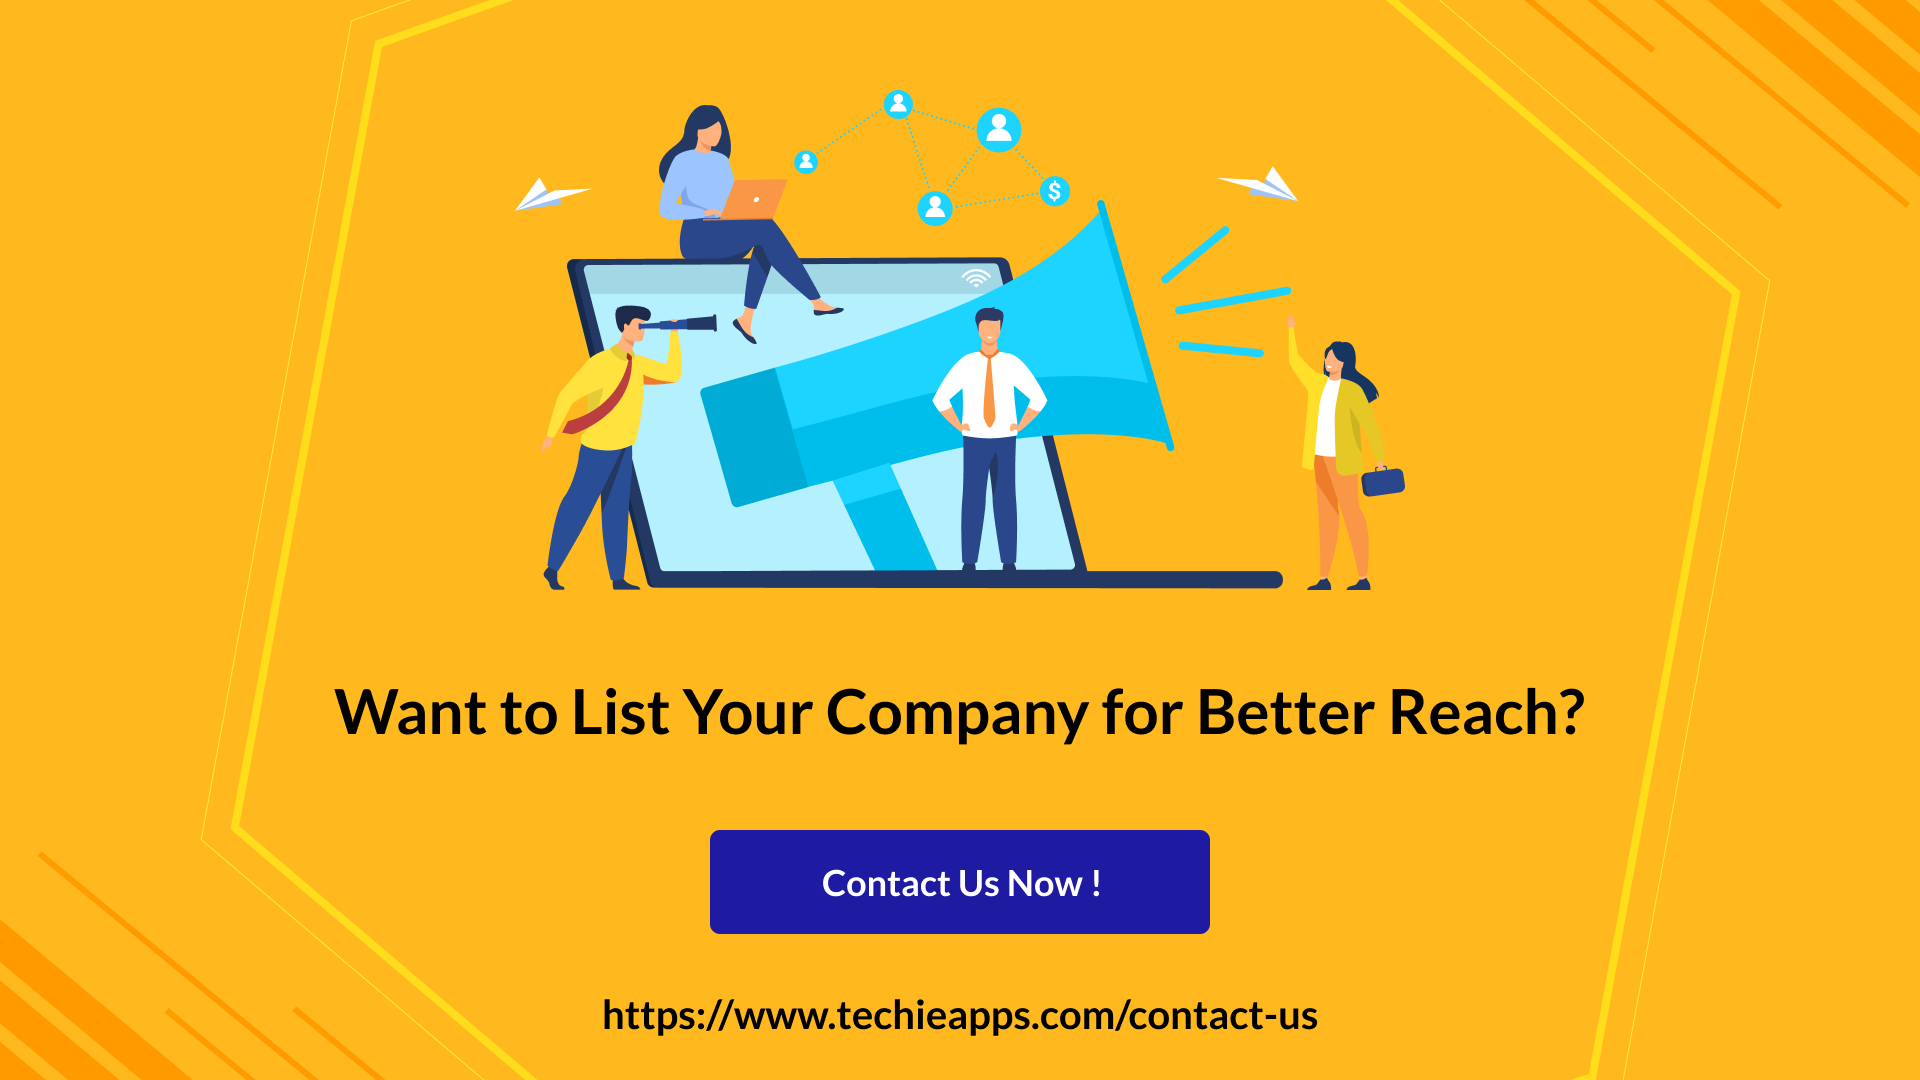 List Your Company on Techieapps